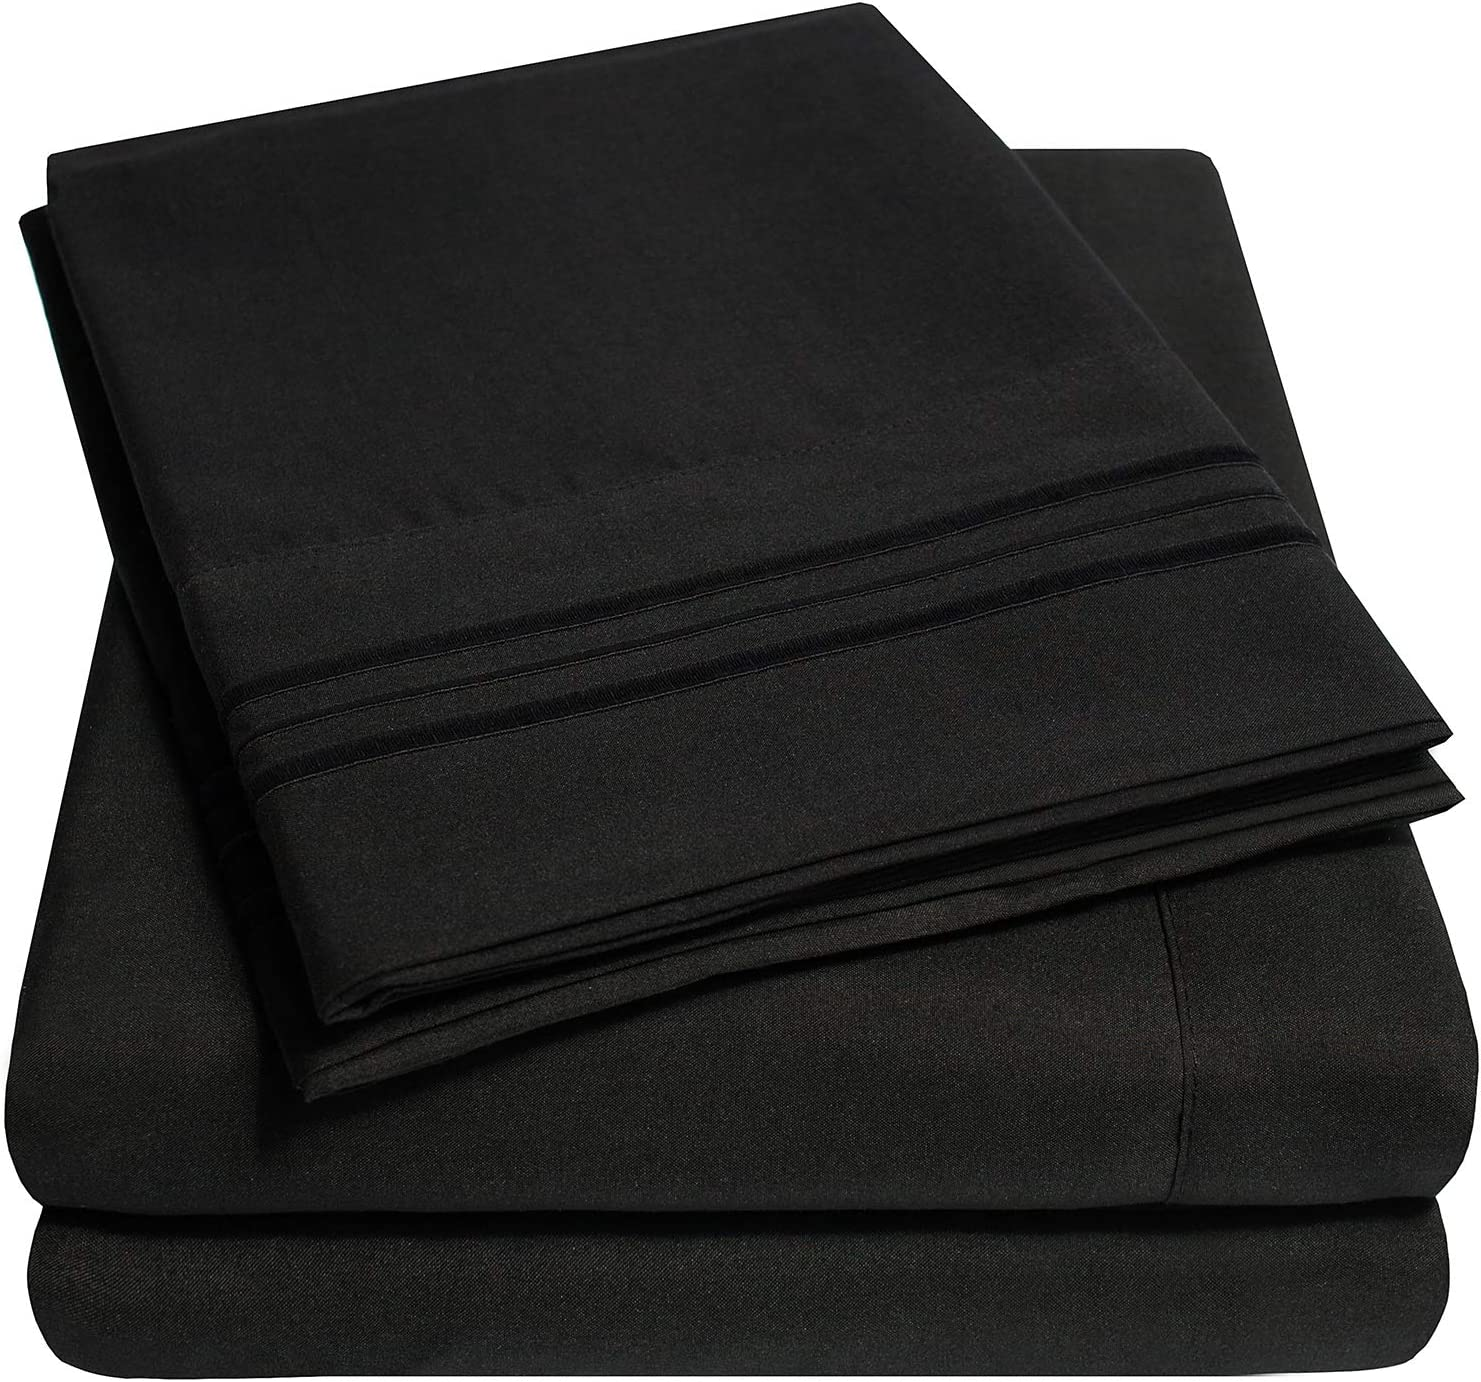 1500 Supreme Collection Extra Soft Queen Sheets Set, Black - Luxury Bed Sheets Set with Deep Pocket Wrinkle Free Hypoallergenic Bedding, Over 40 Colors, Queen Size, Black